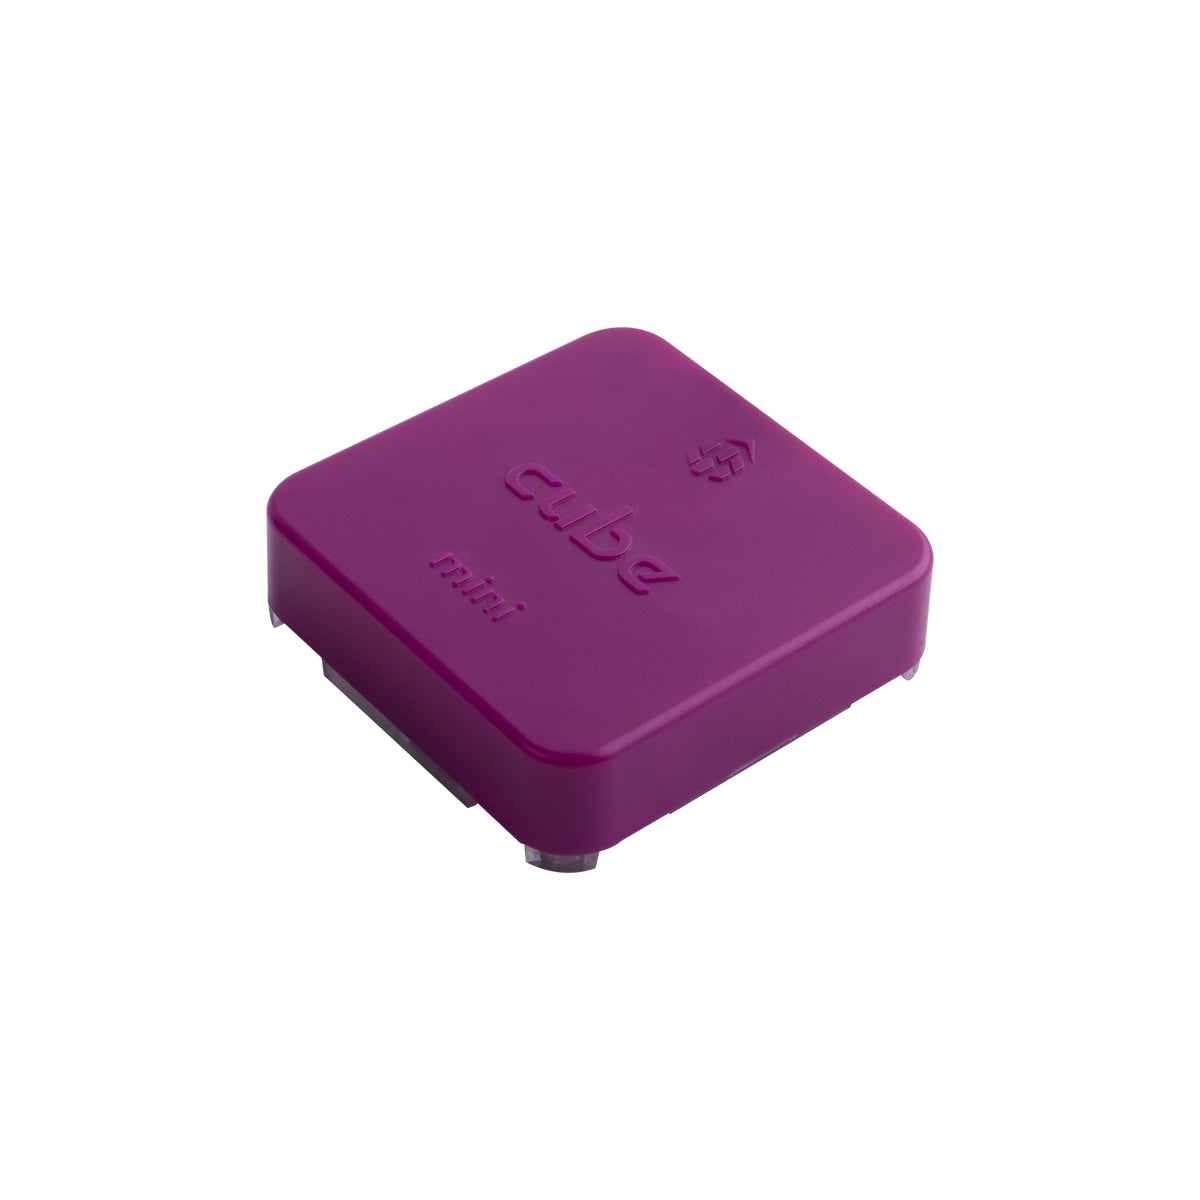 The Cube Purple